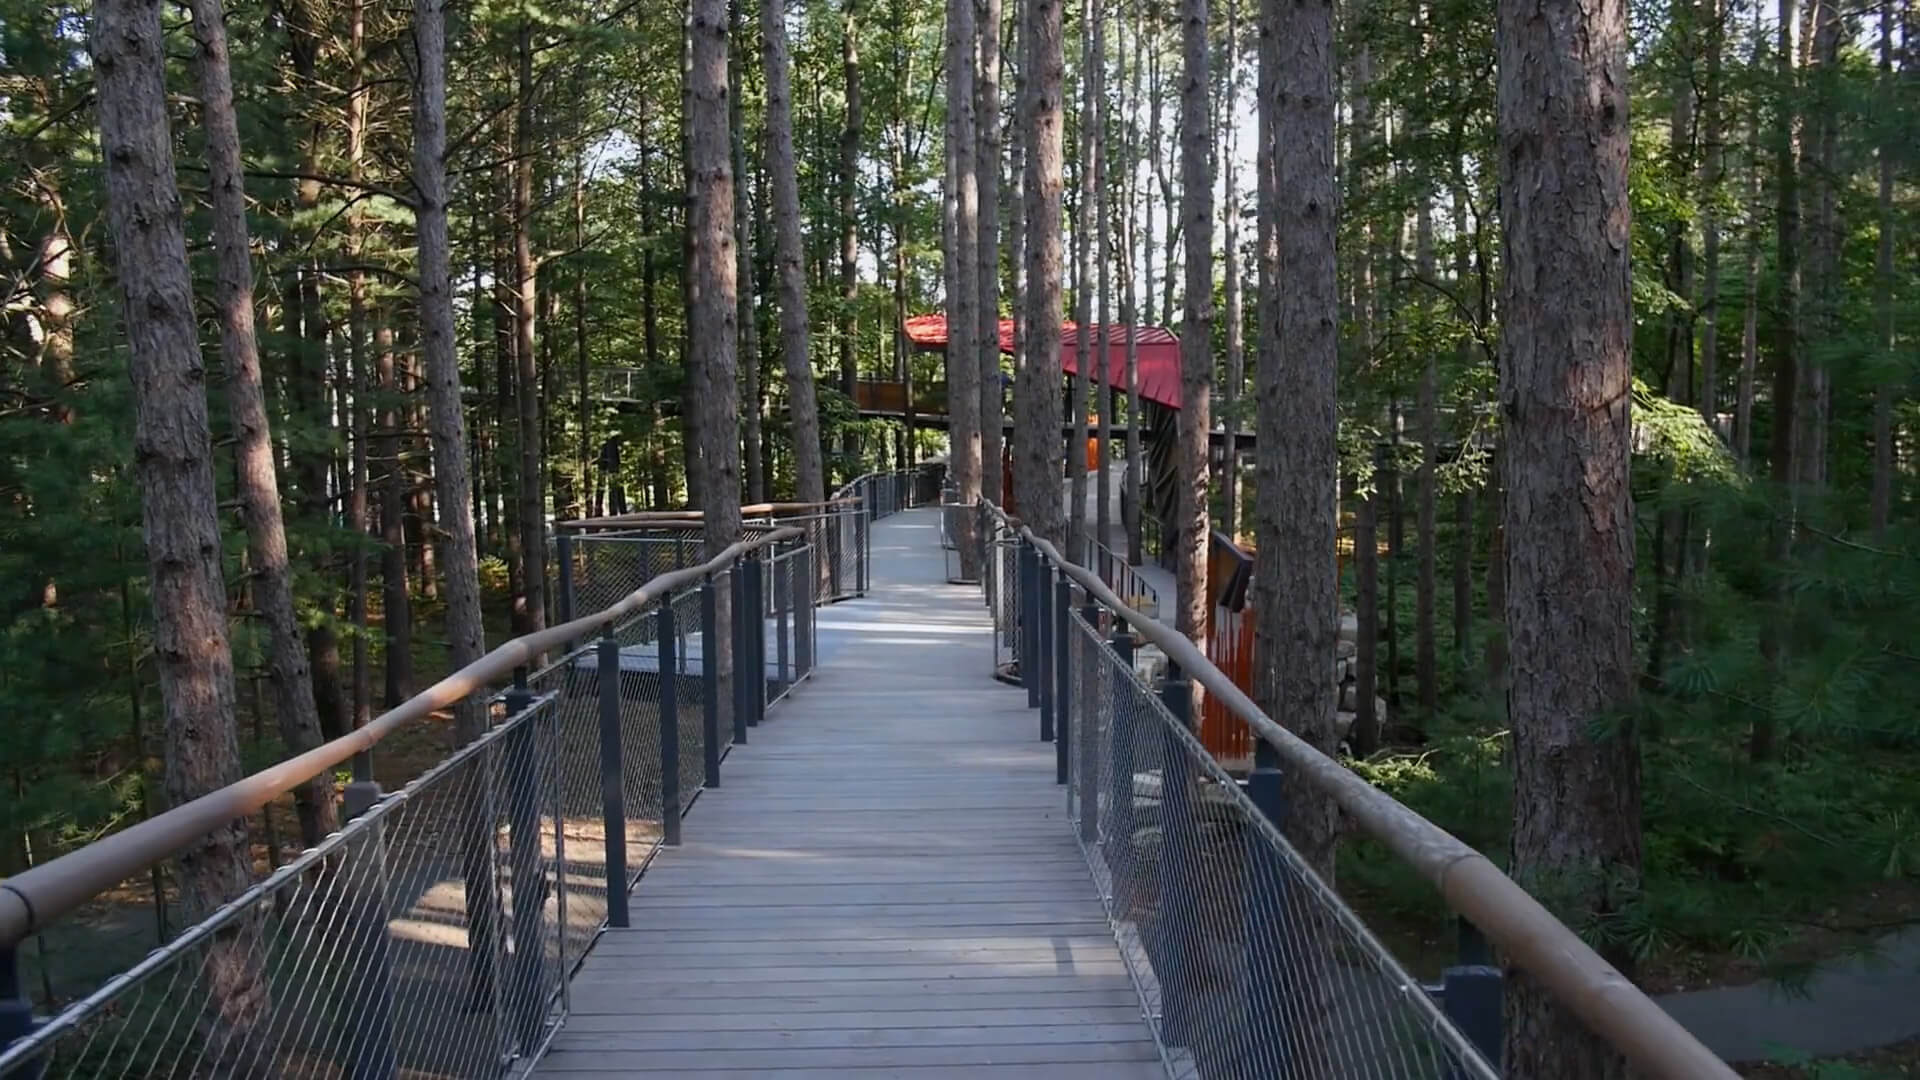 Canopy Walk at Dow Gardens